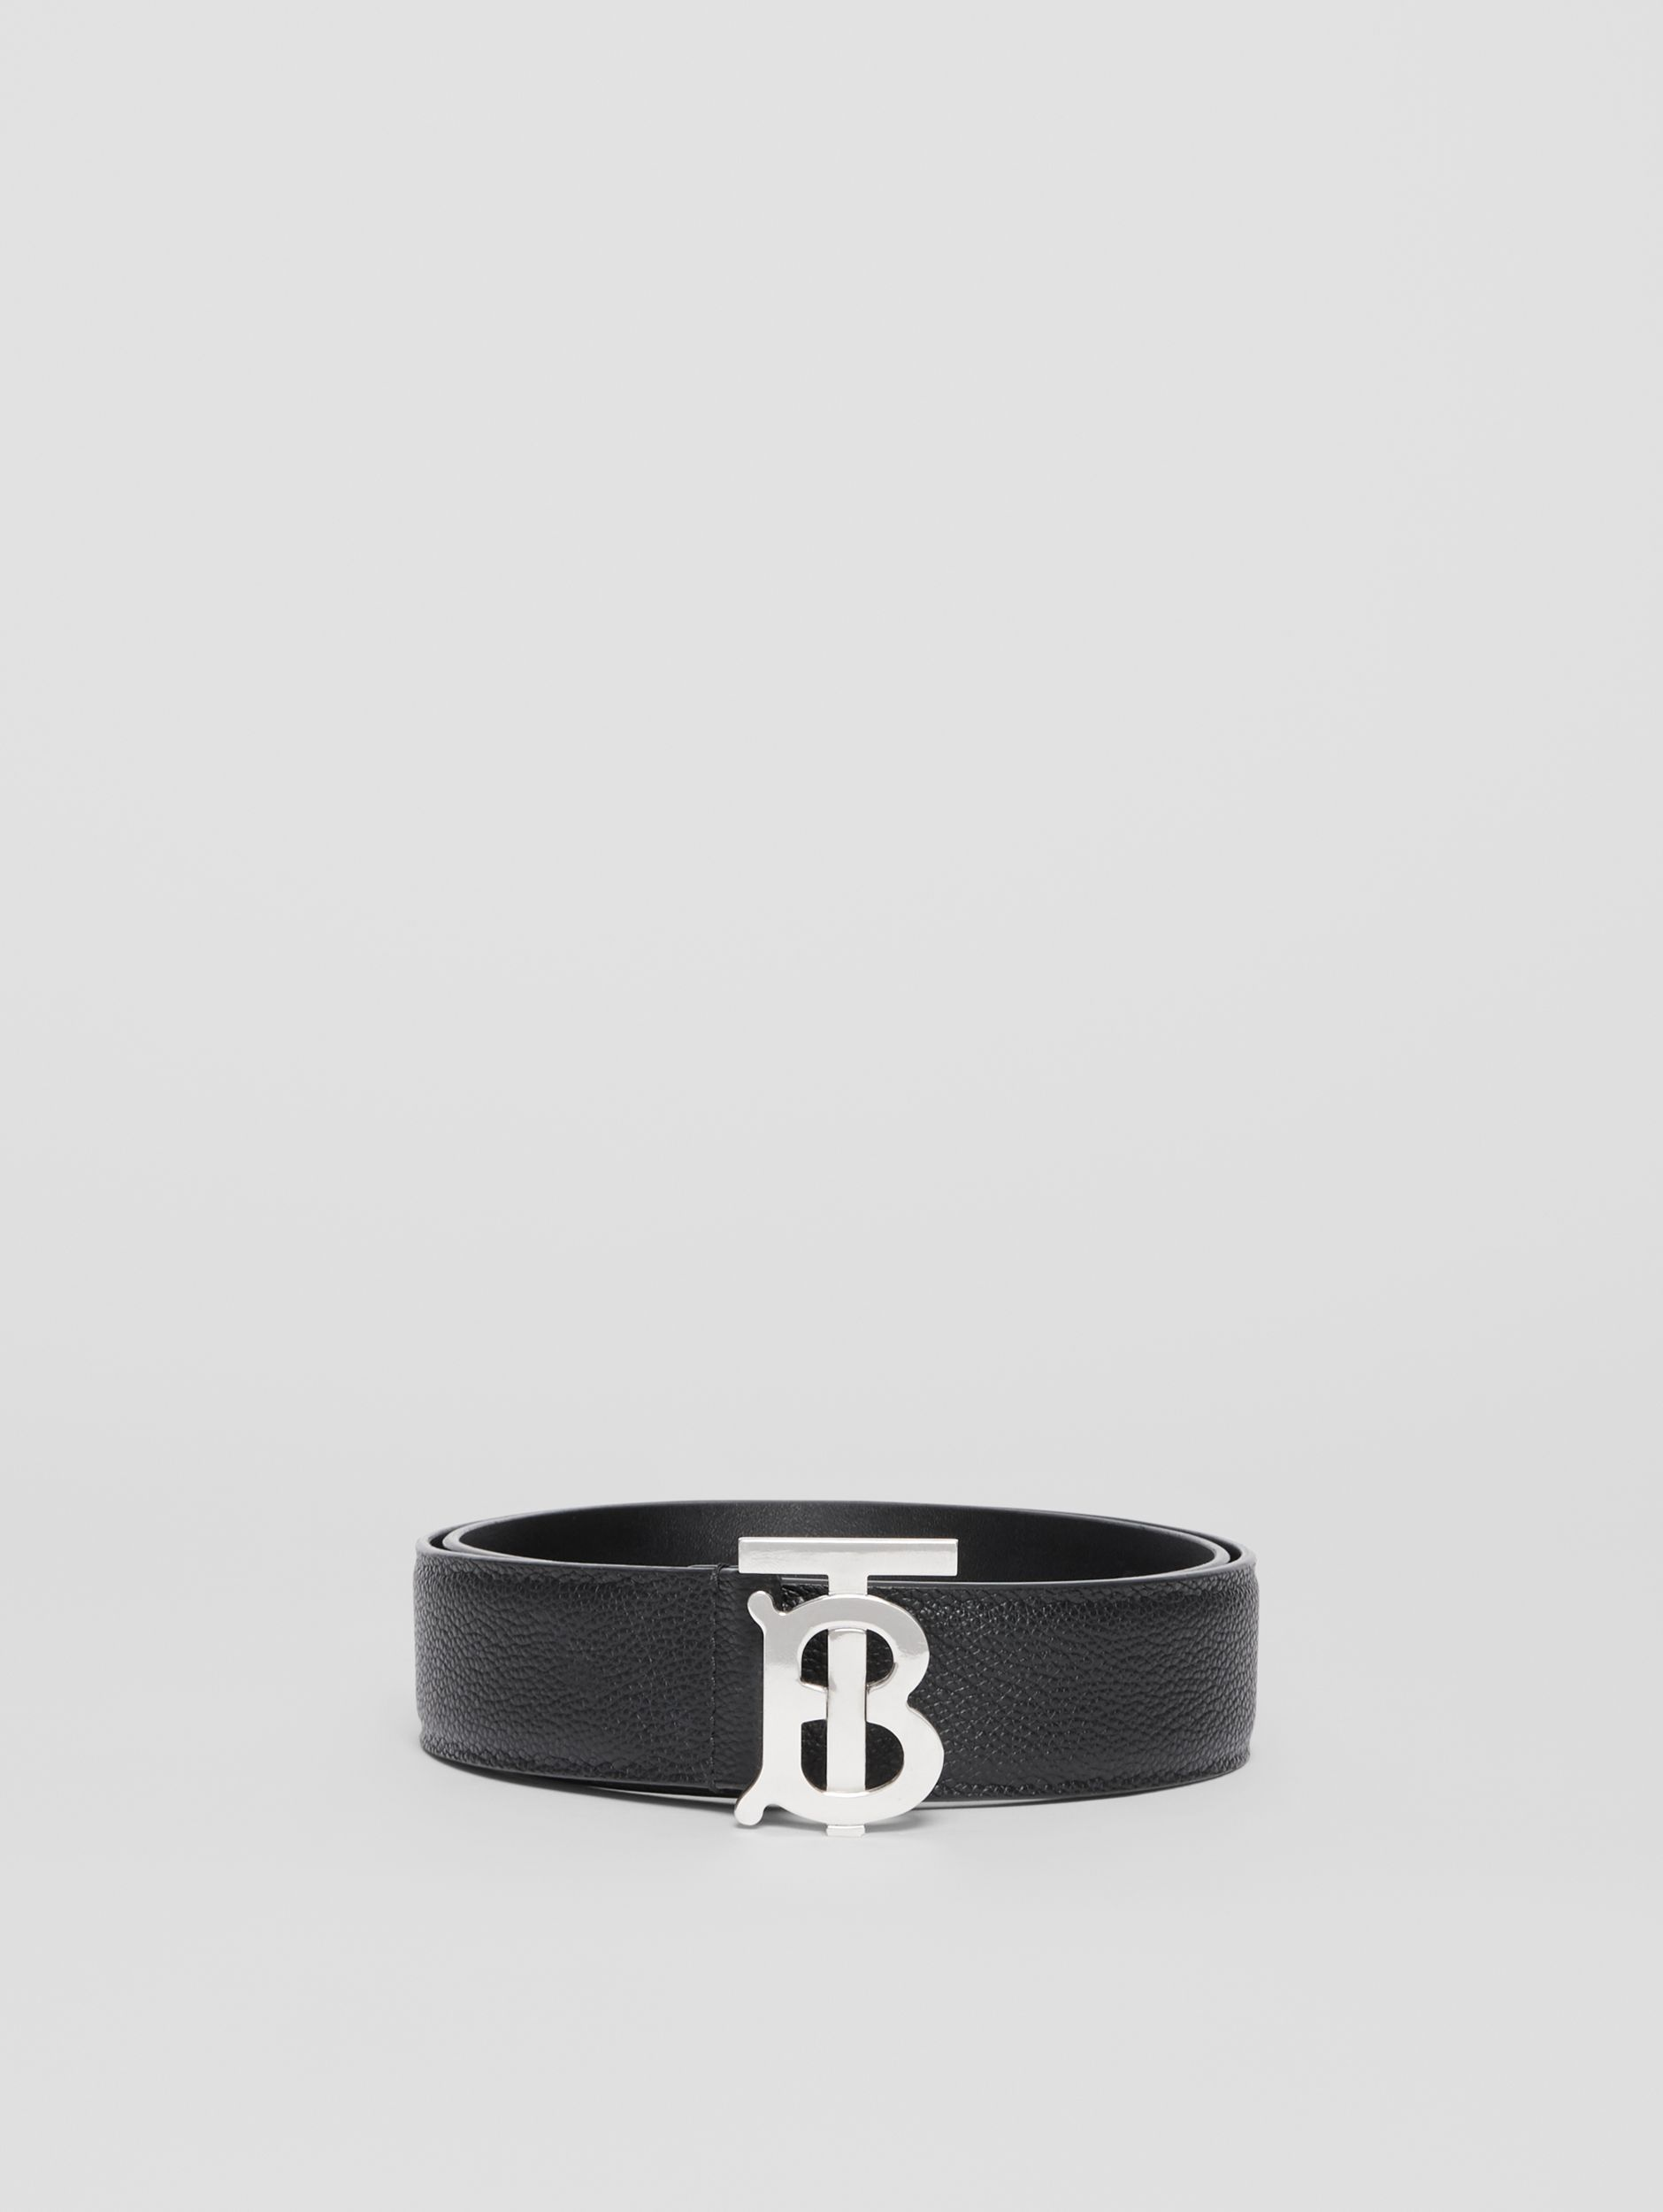 Monogram Motif Grainy Leather Belt in Black - Men | Burberry - 3